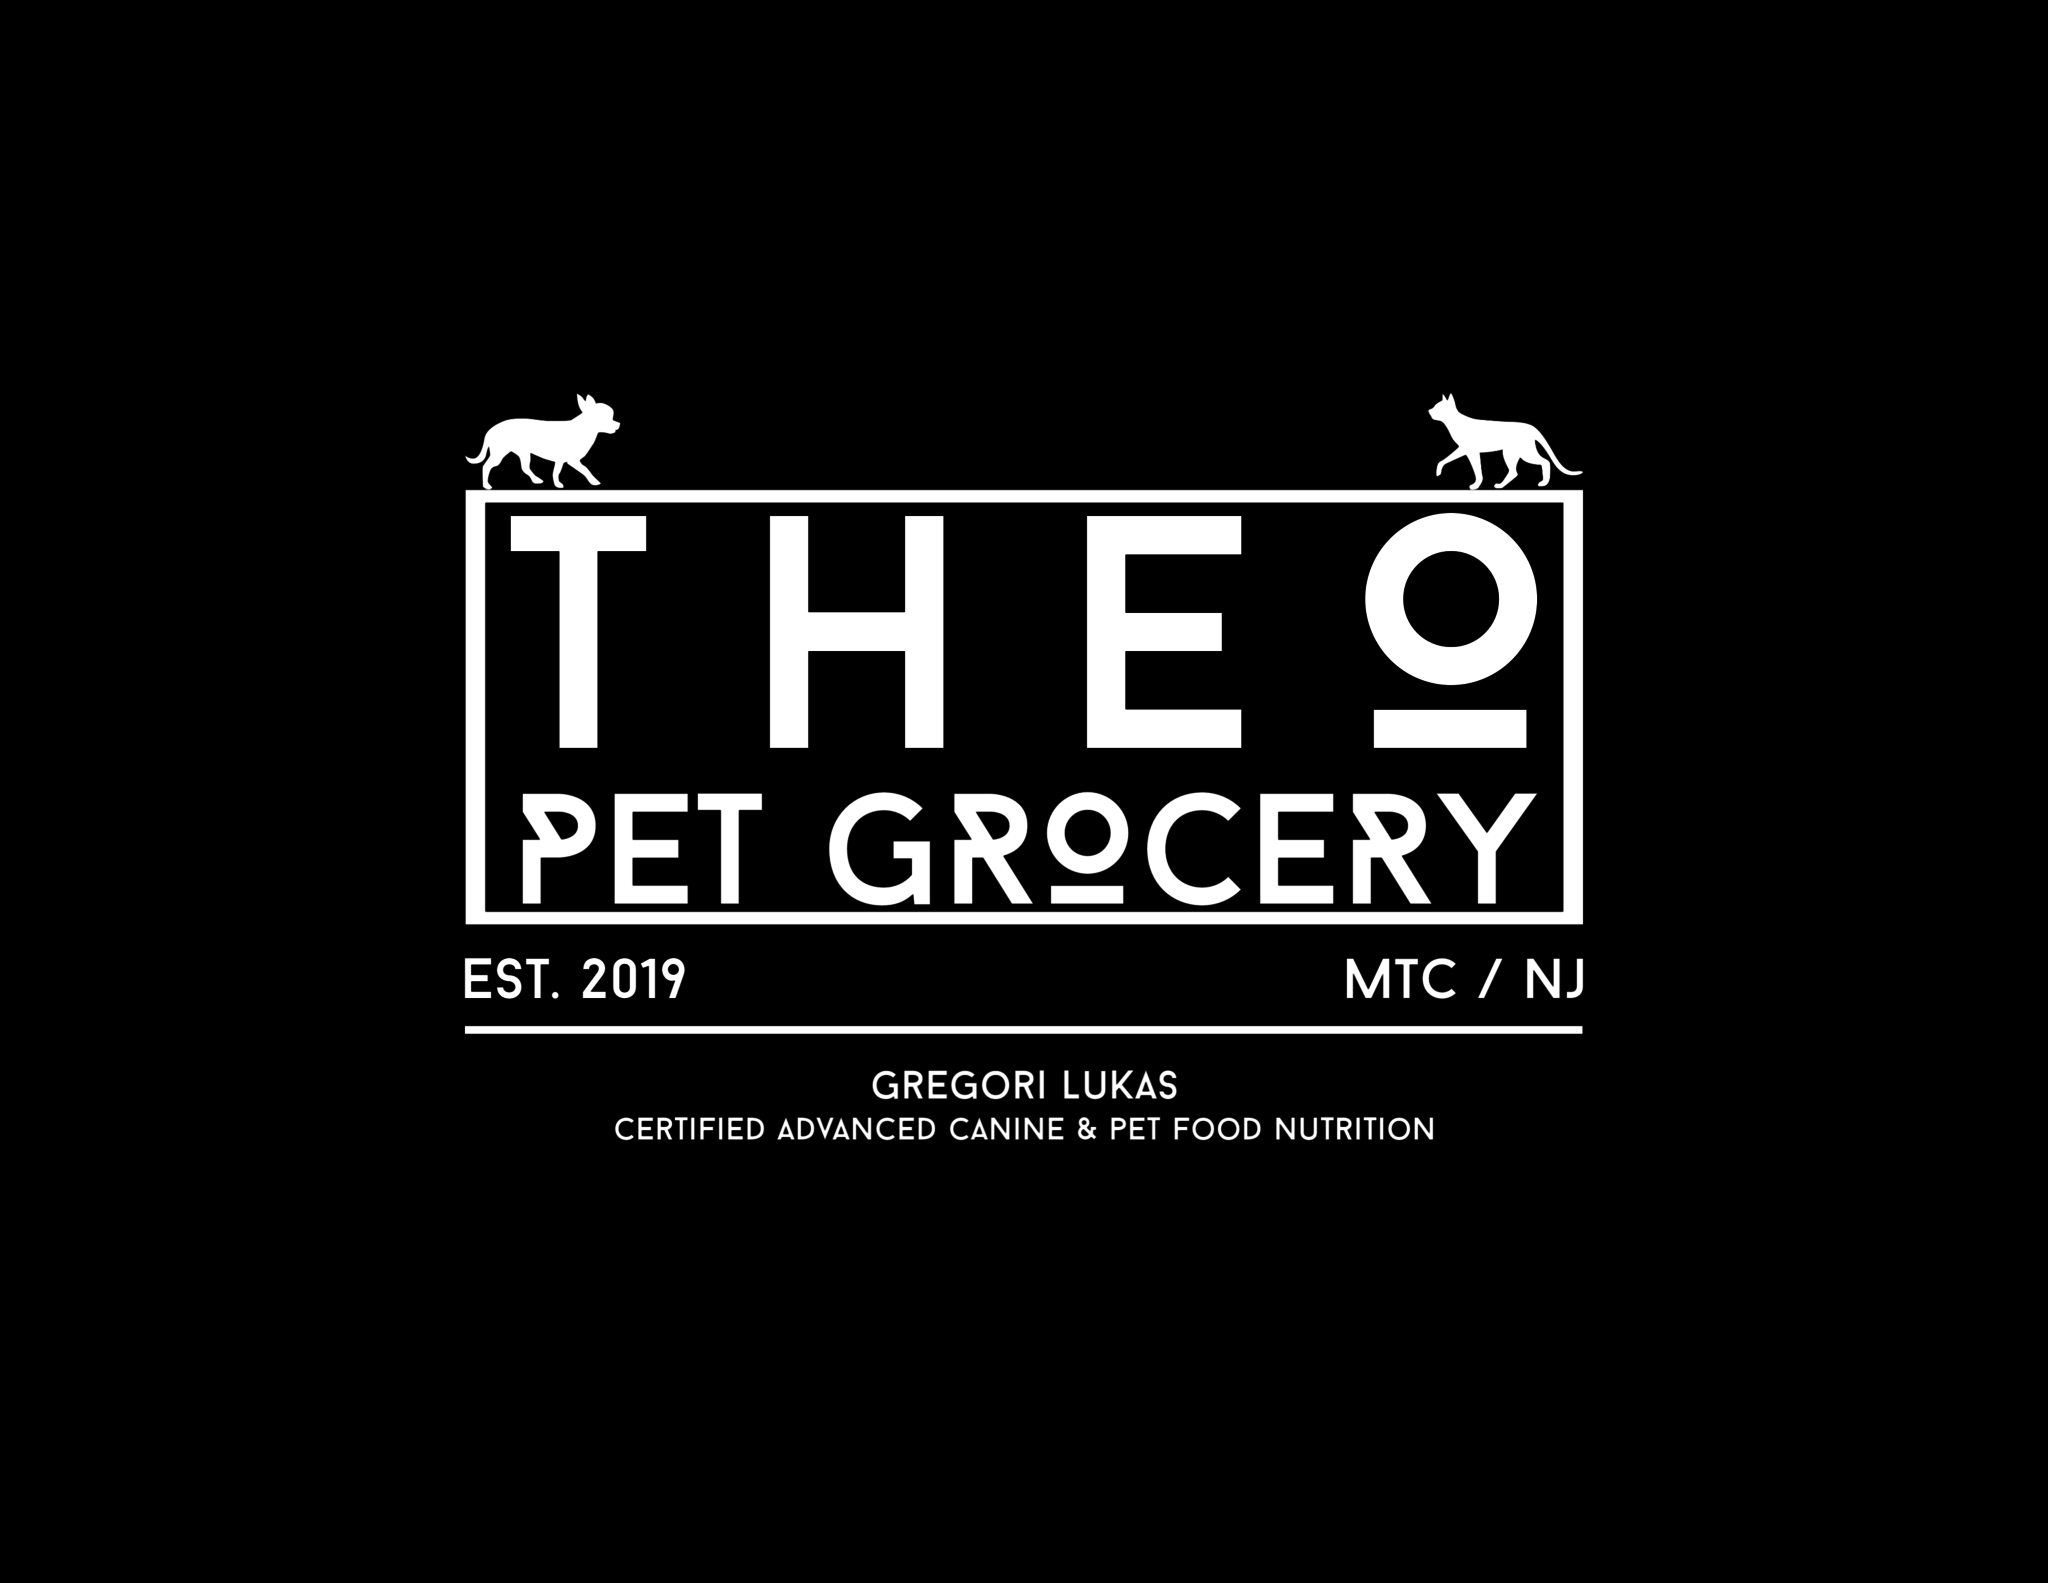 Welcome To THEO Pet Grocery Online!